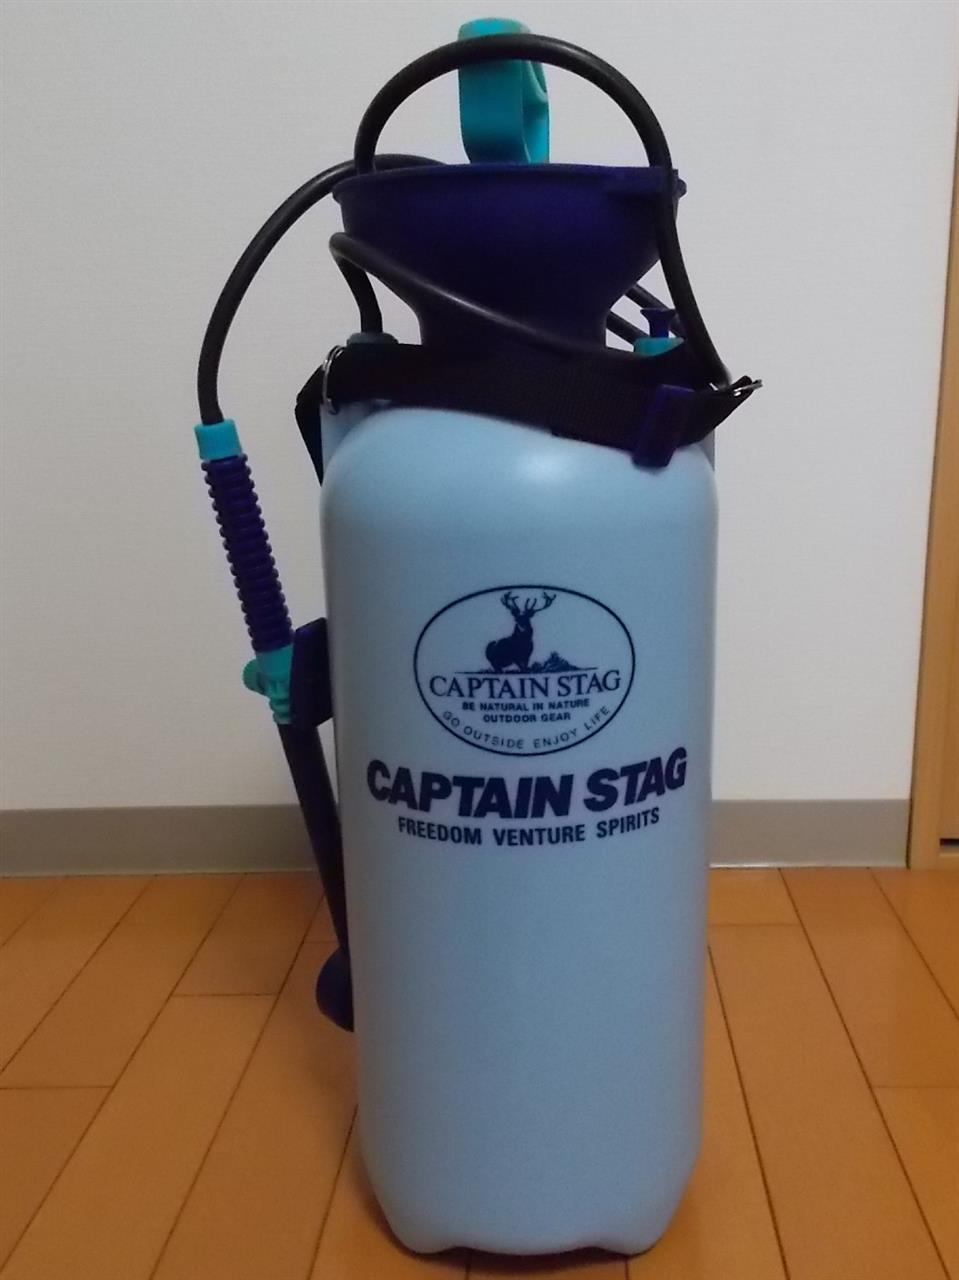 CAPTAIN STAG ポンピングシャワー(洗車用)